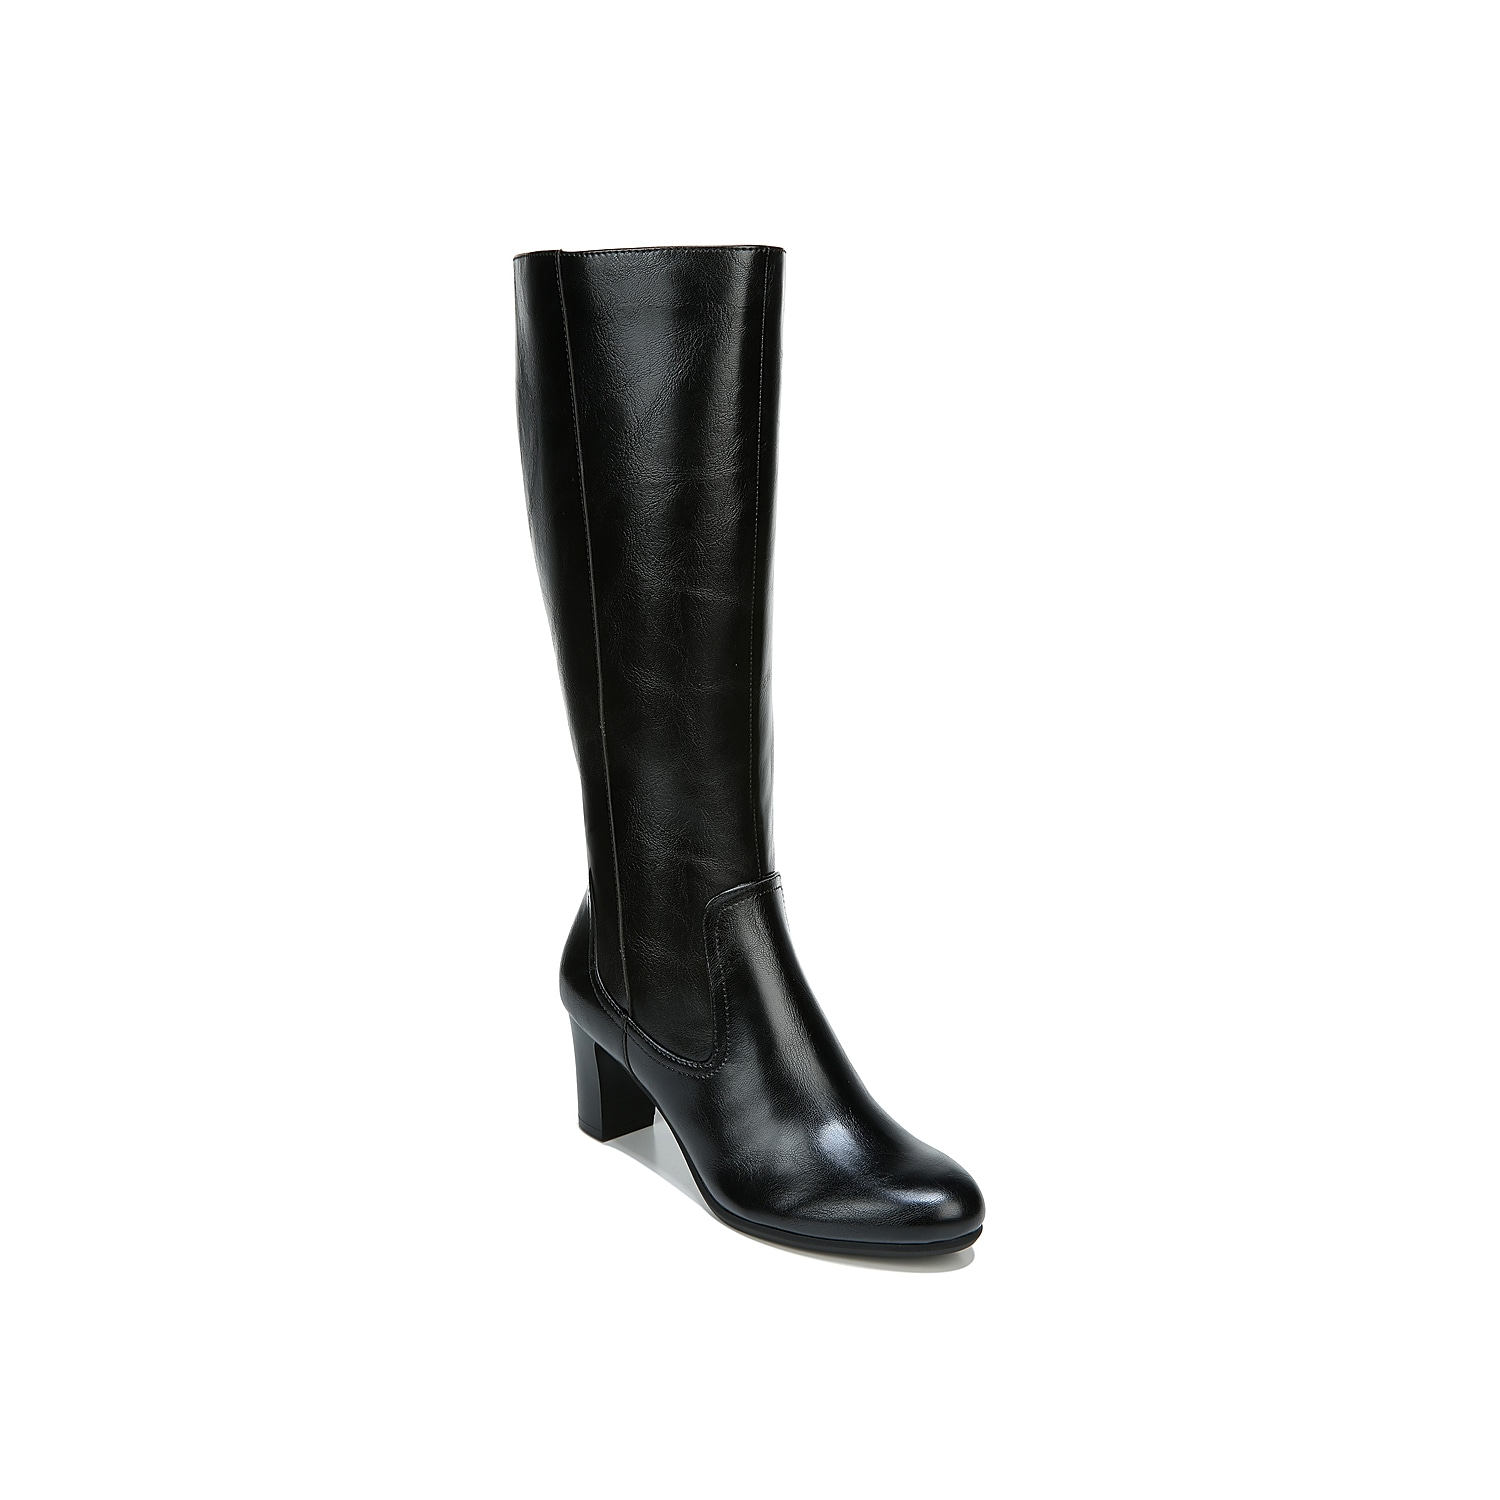 The Life Stride Missy boot heightens your fashion standards to the next level. Besides a tall shaft profile, this boot is enhanced with elegant almond toe and convenient full-length inside zipper.Click here for Boot Measuring Guide.